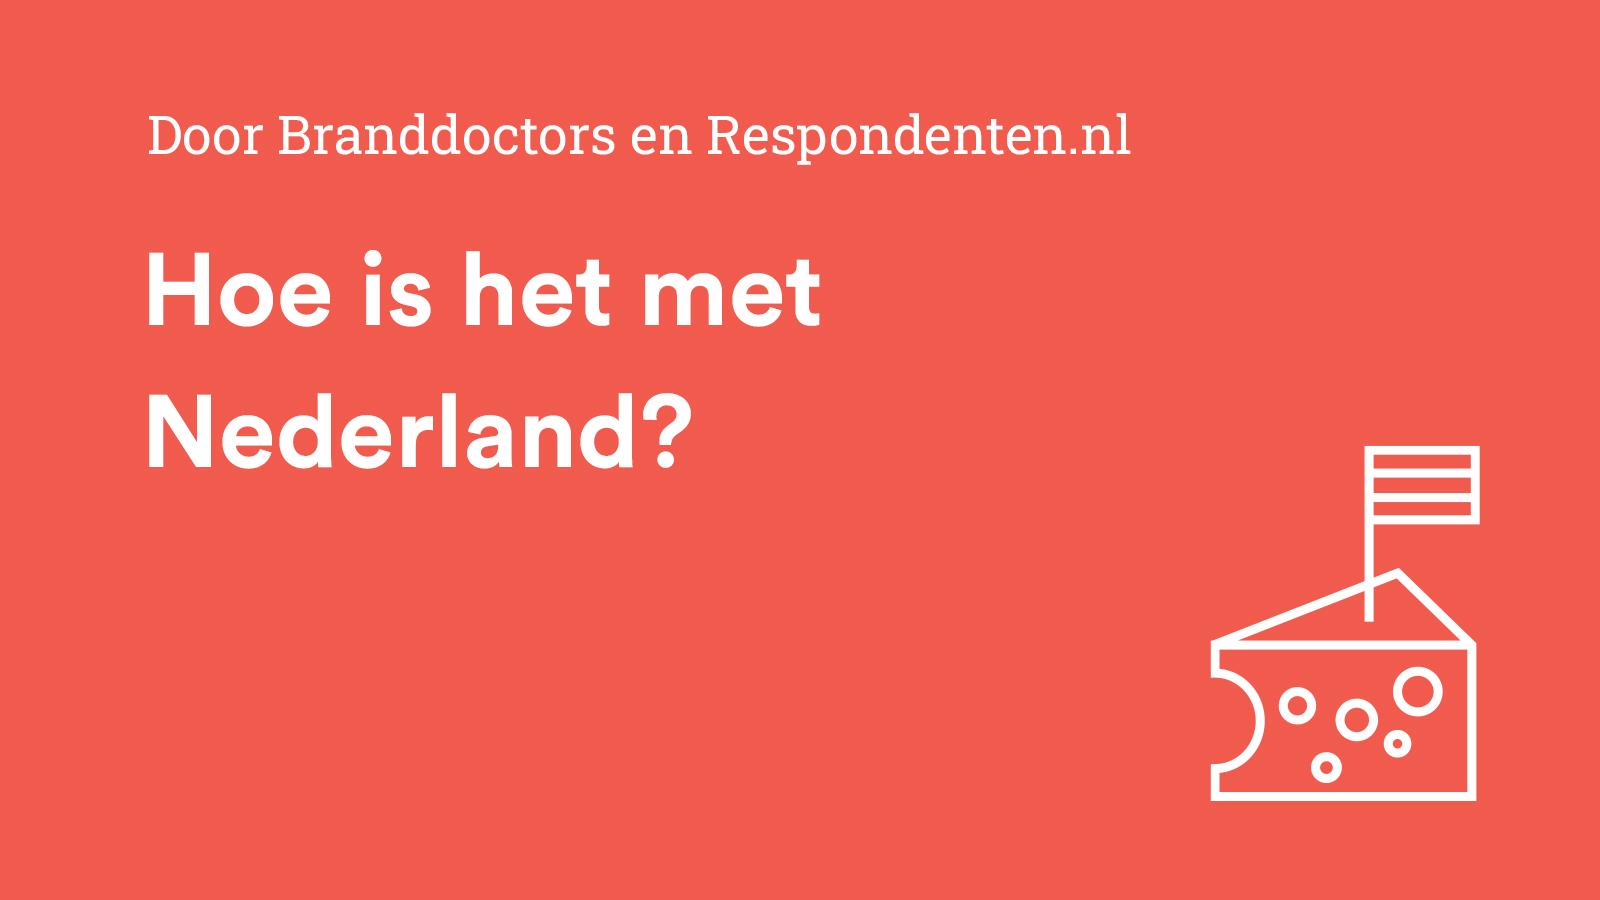 How is the Netherlands?